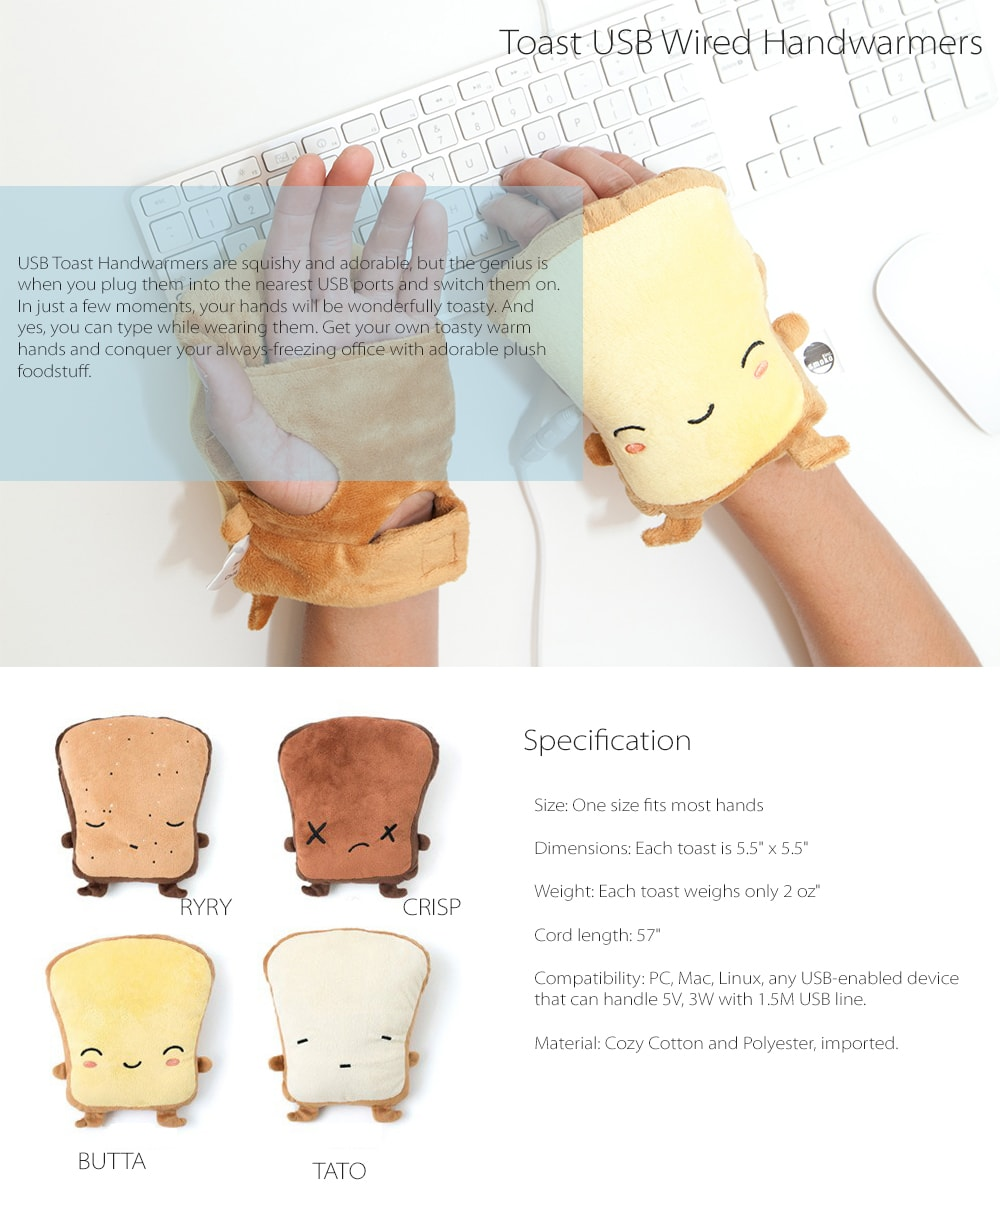 USB Toast Handwarmers Squishy And Adorable